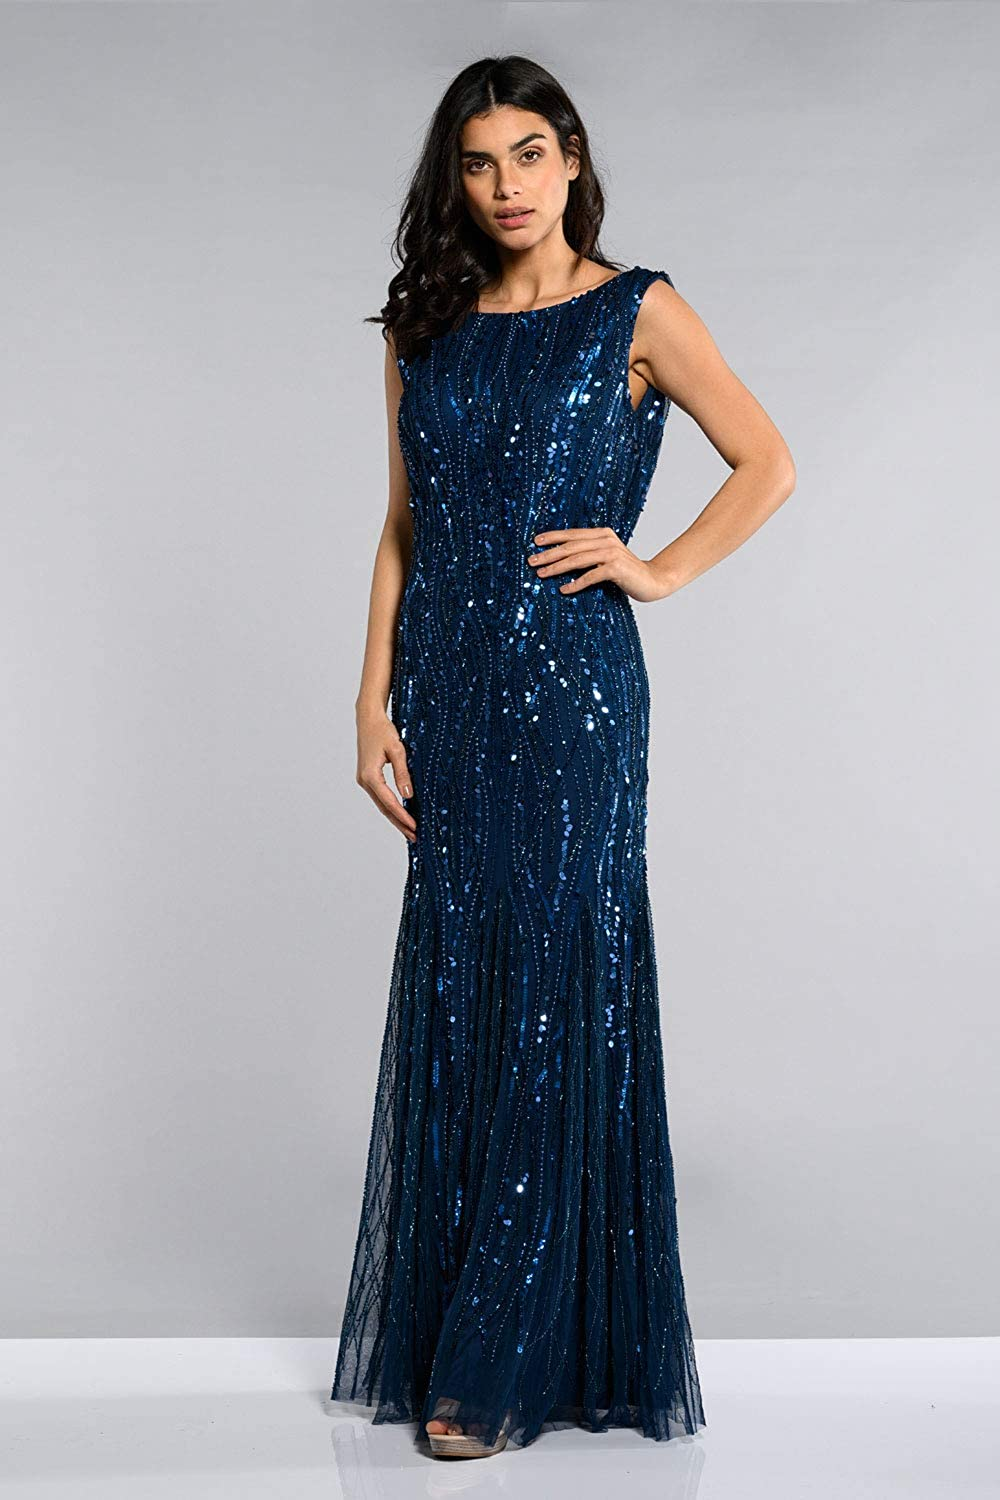 Vintage 1920s Dresses – Where to Buy gatsbylady london Catherine Maxi Prom Dress with Cowl Back Neck in Midnight Blue £179.00 AT vintagedancer.com